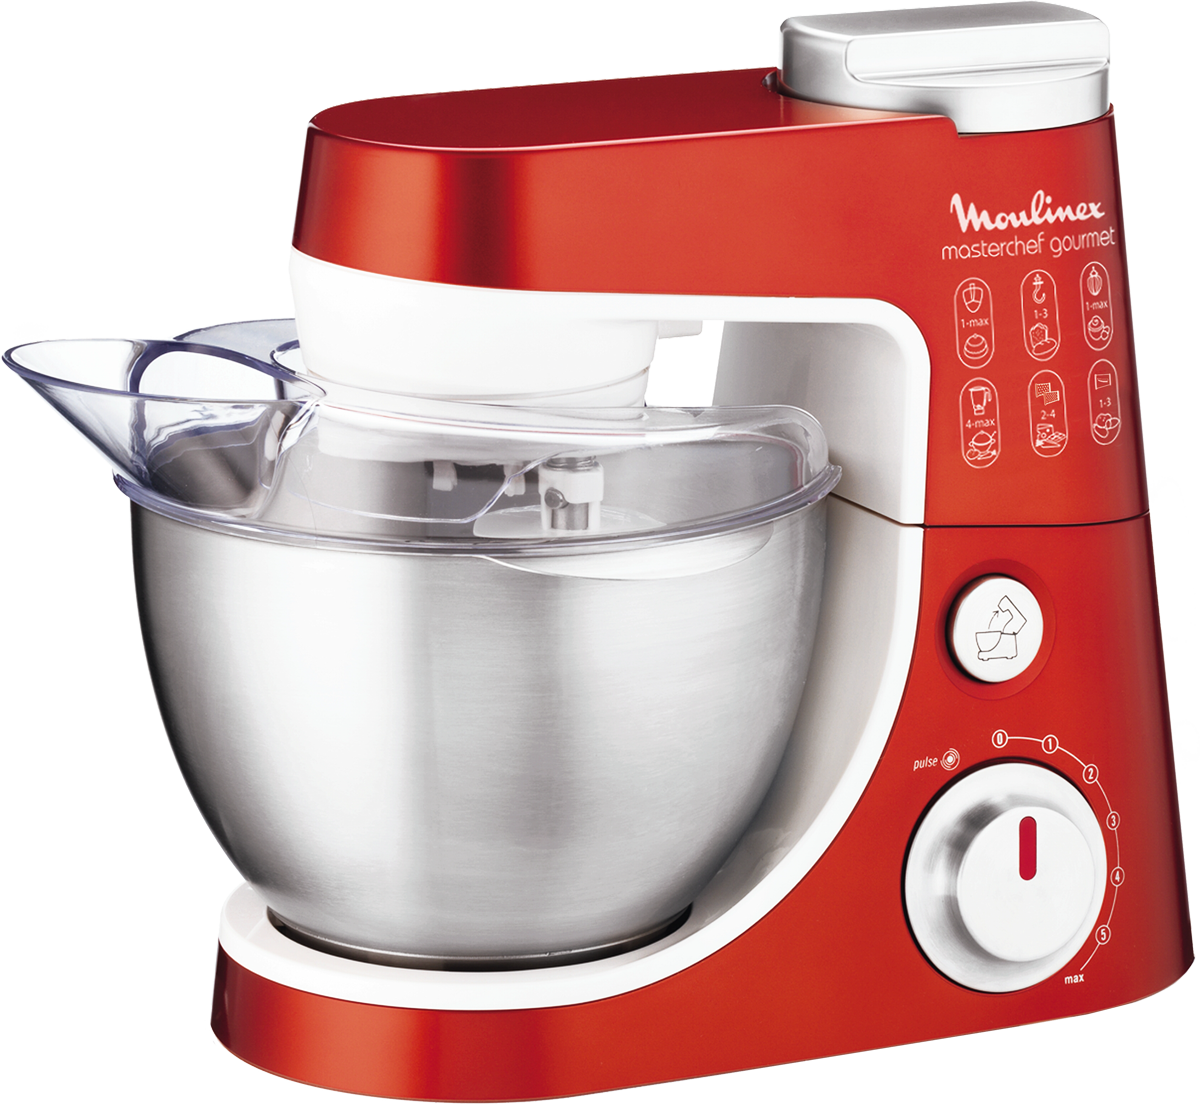 Moulinex masterchef gourmet plus xmas edition robot de for Ustensile de cuisine rouge